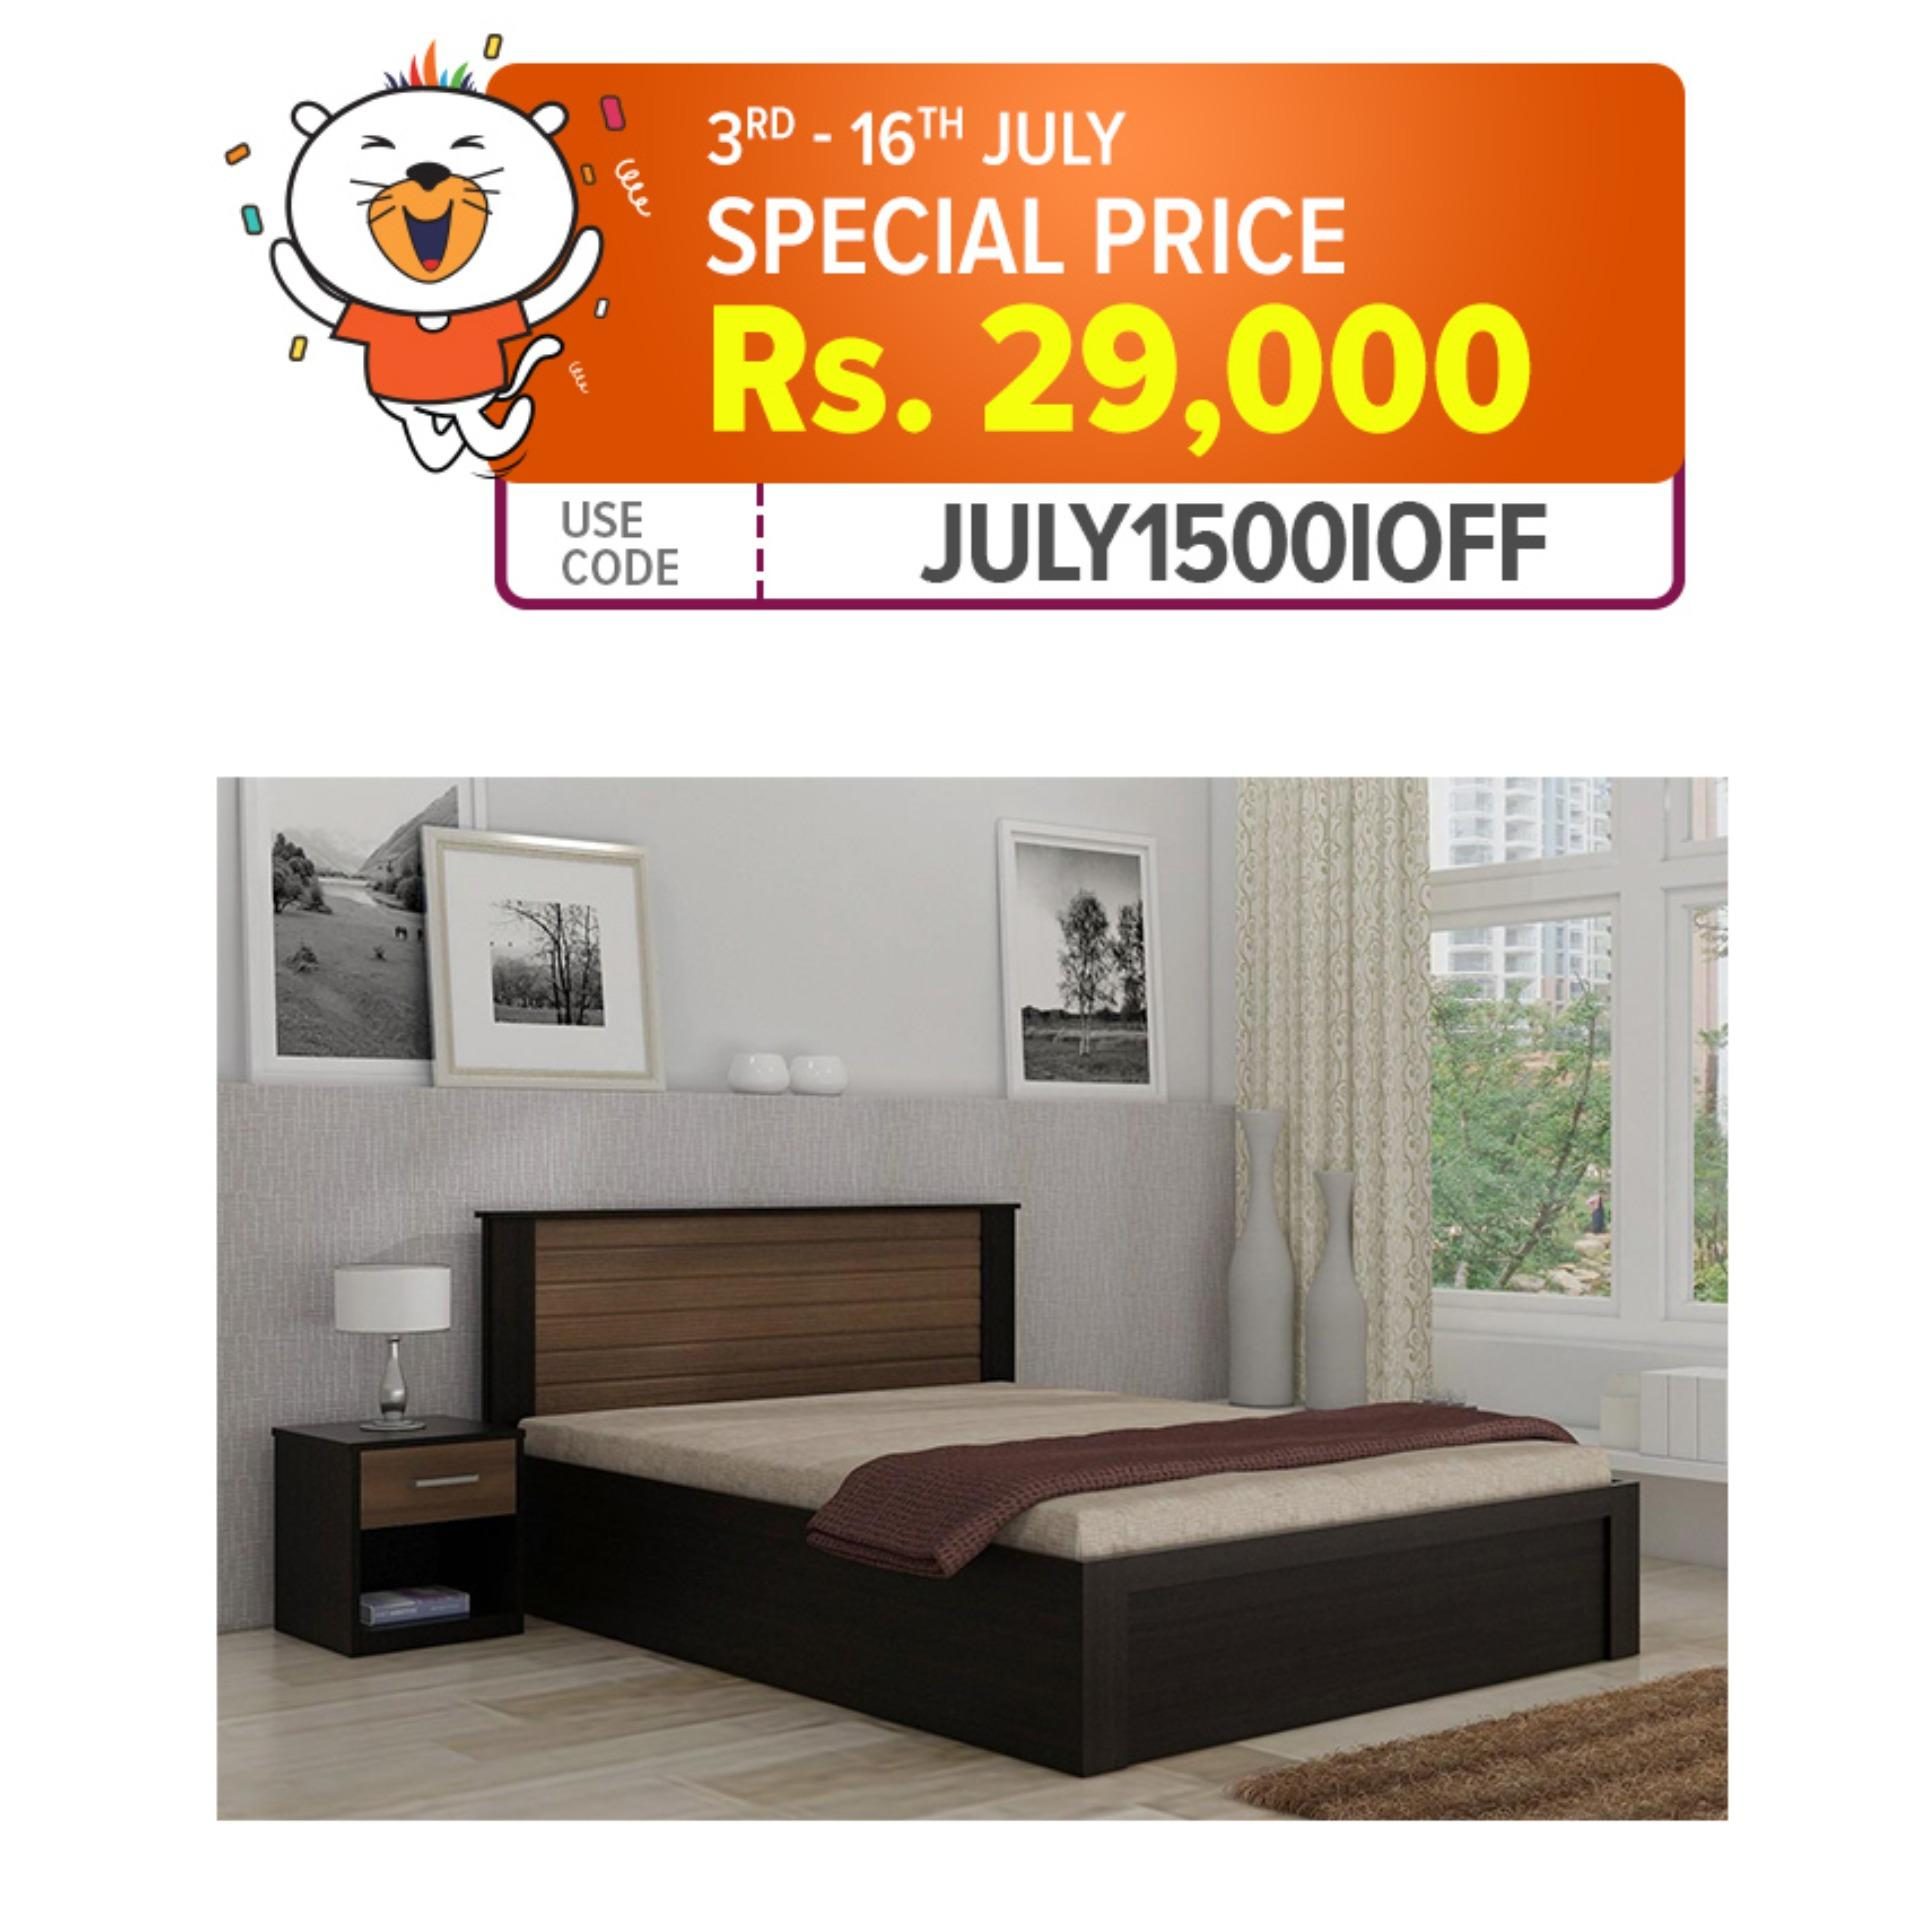 3f5c10d6f019 Double Tone Modern Design King / Queen / Single Bed with side tables